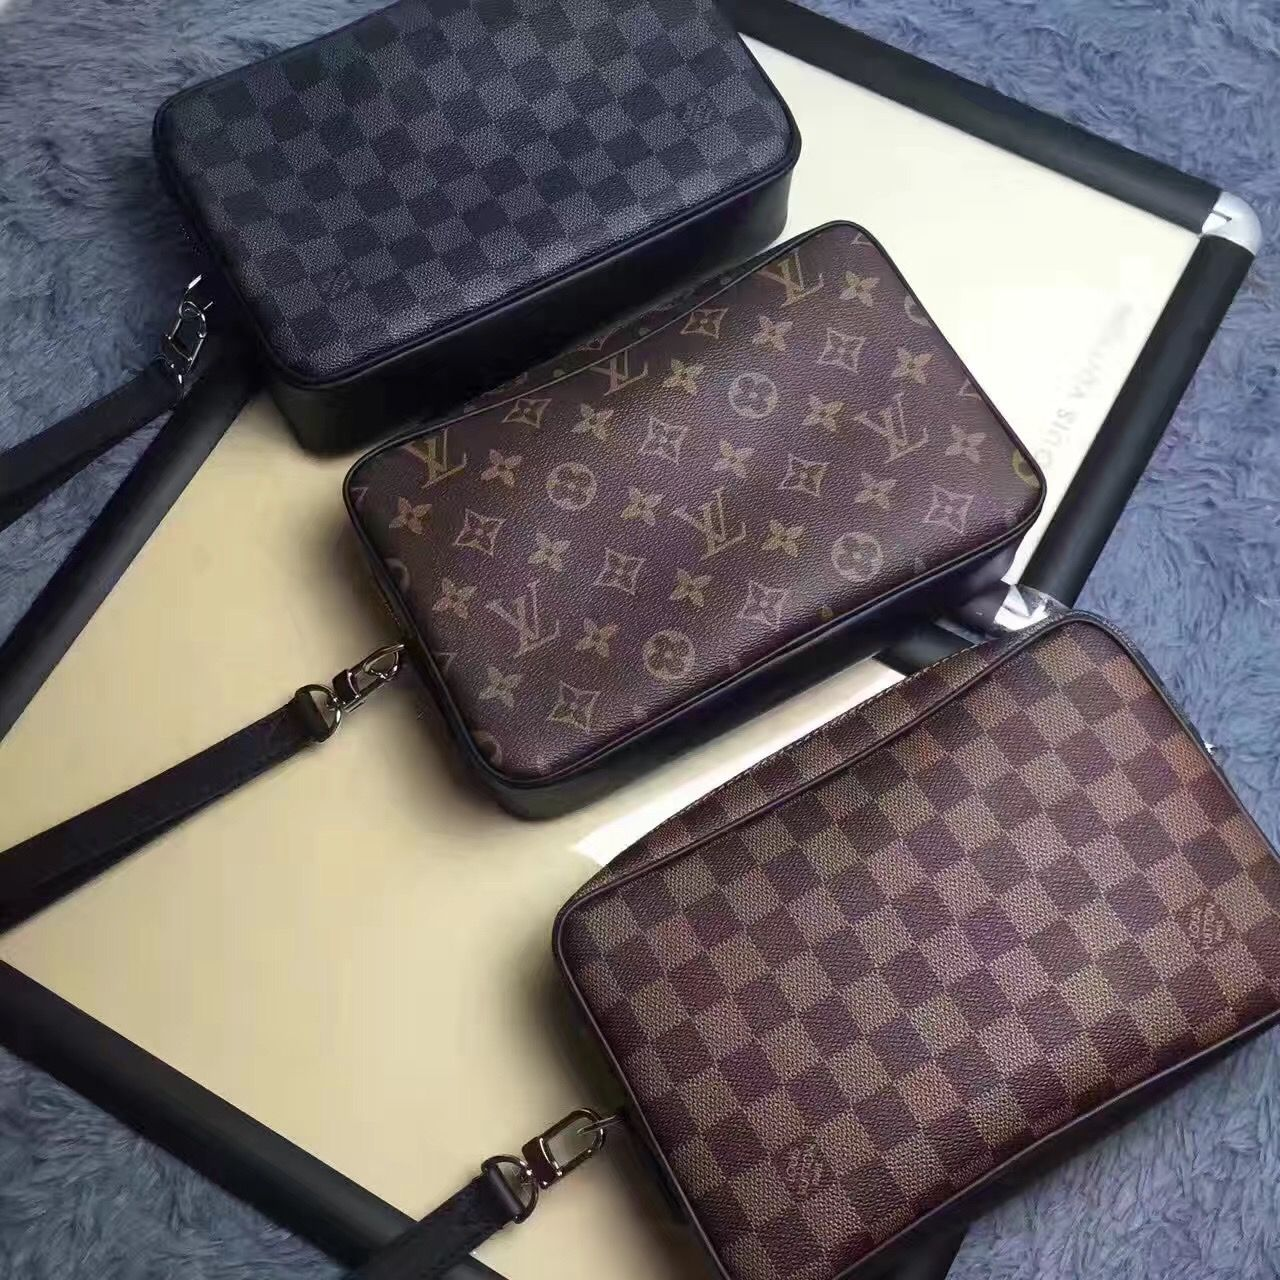 523f1bd38ecb Louis Vuitton man clutch purse handbag original leather